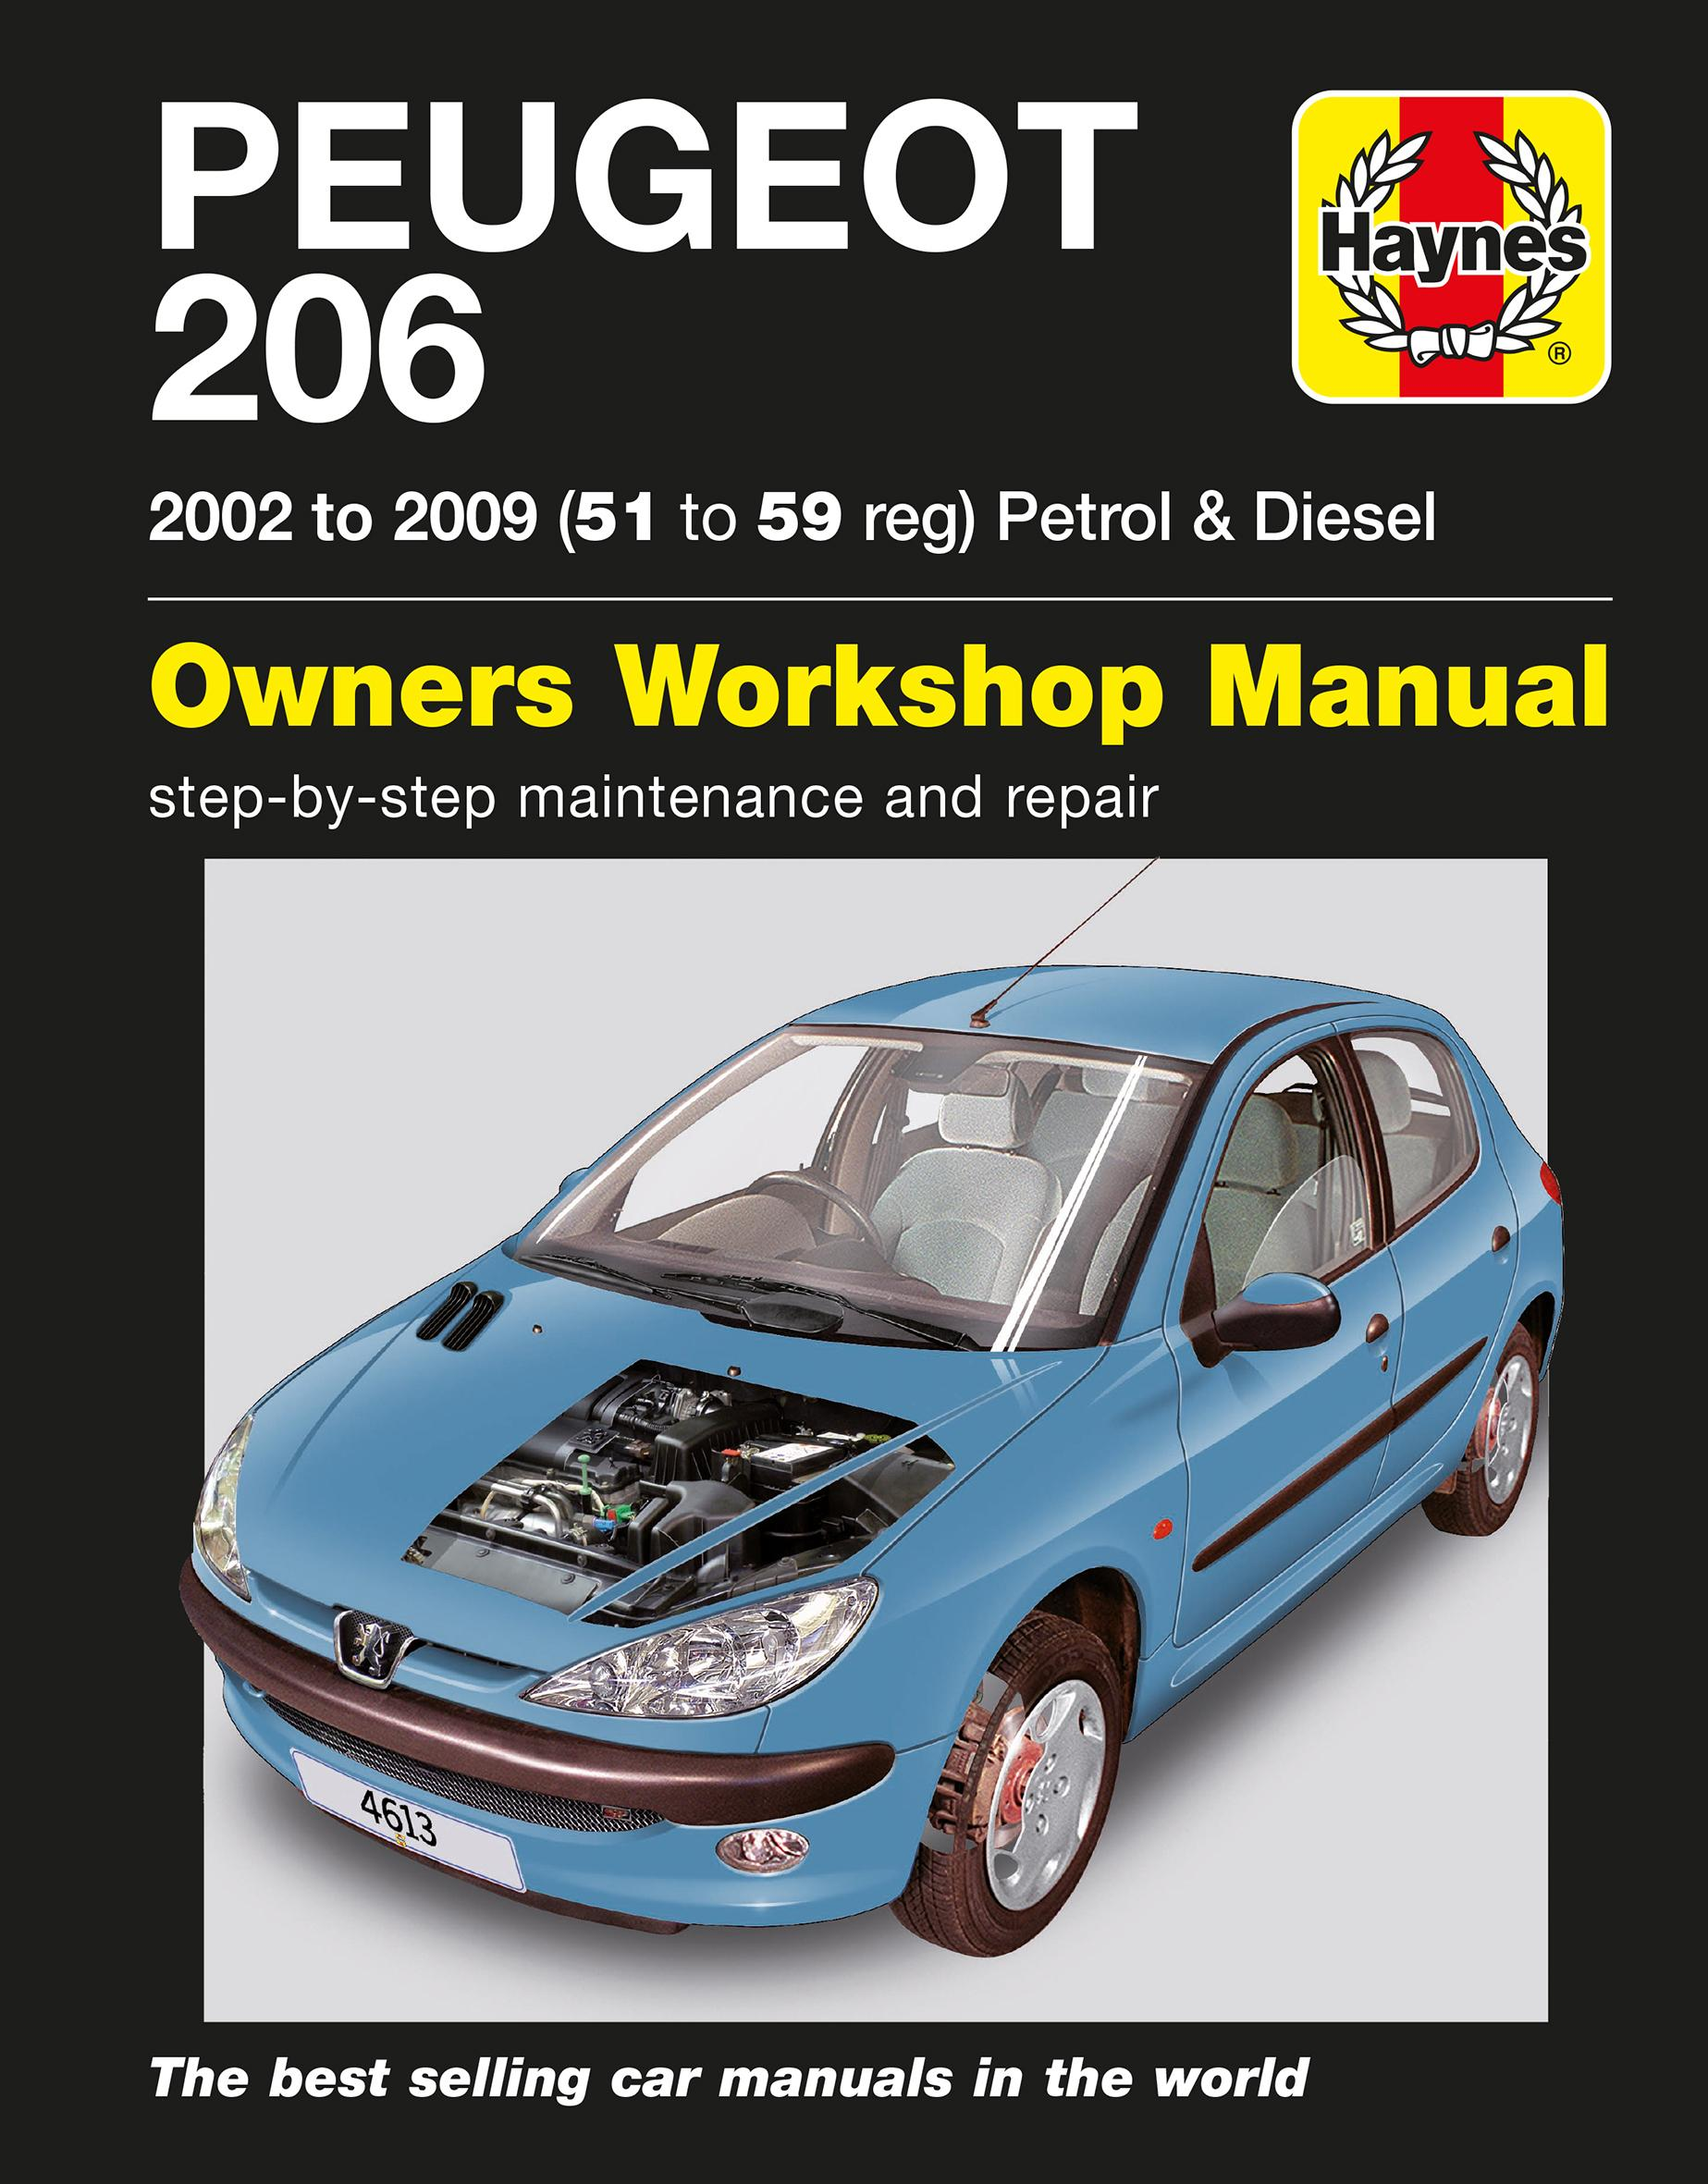 service manual peugeot 206 free owners manual u2022 rh wordworksbysea com peugeot 207 user manual pdf download peugeot 207 user manual pdf